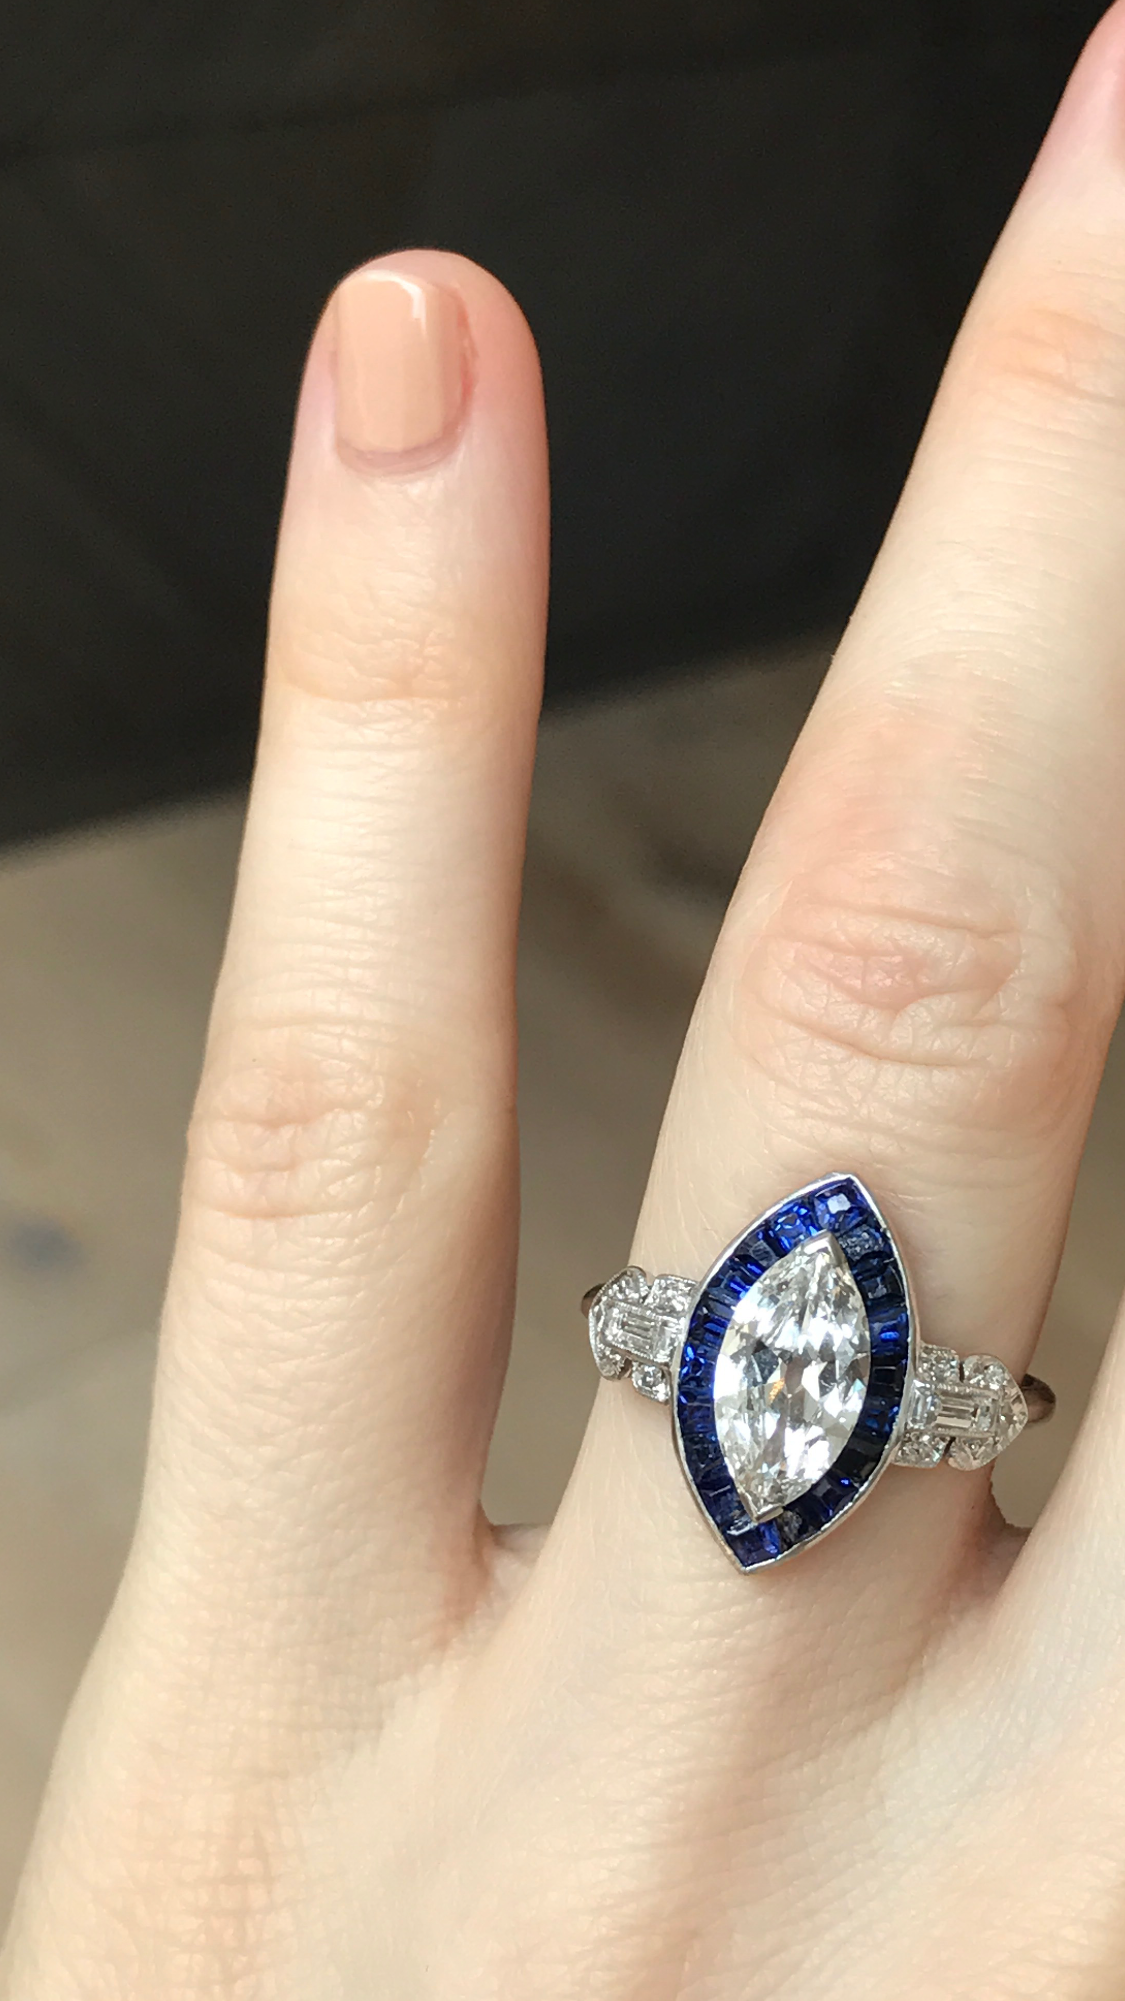 Vintage Art Deco Engagement Ring Made In Platinum Featuring A Gia Art Deco Sapphire Engagement Ring Vintage Engagement Rings Sapphire Art Deco Engagement Ring